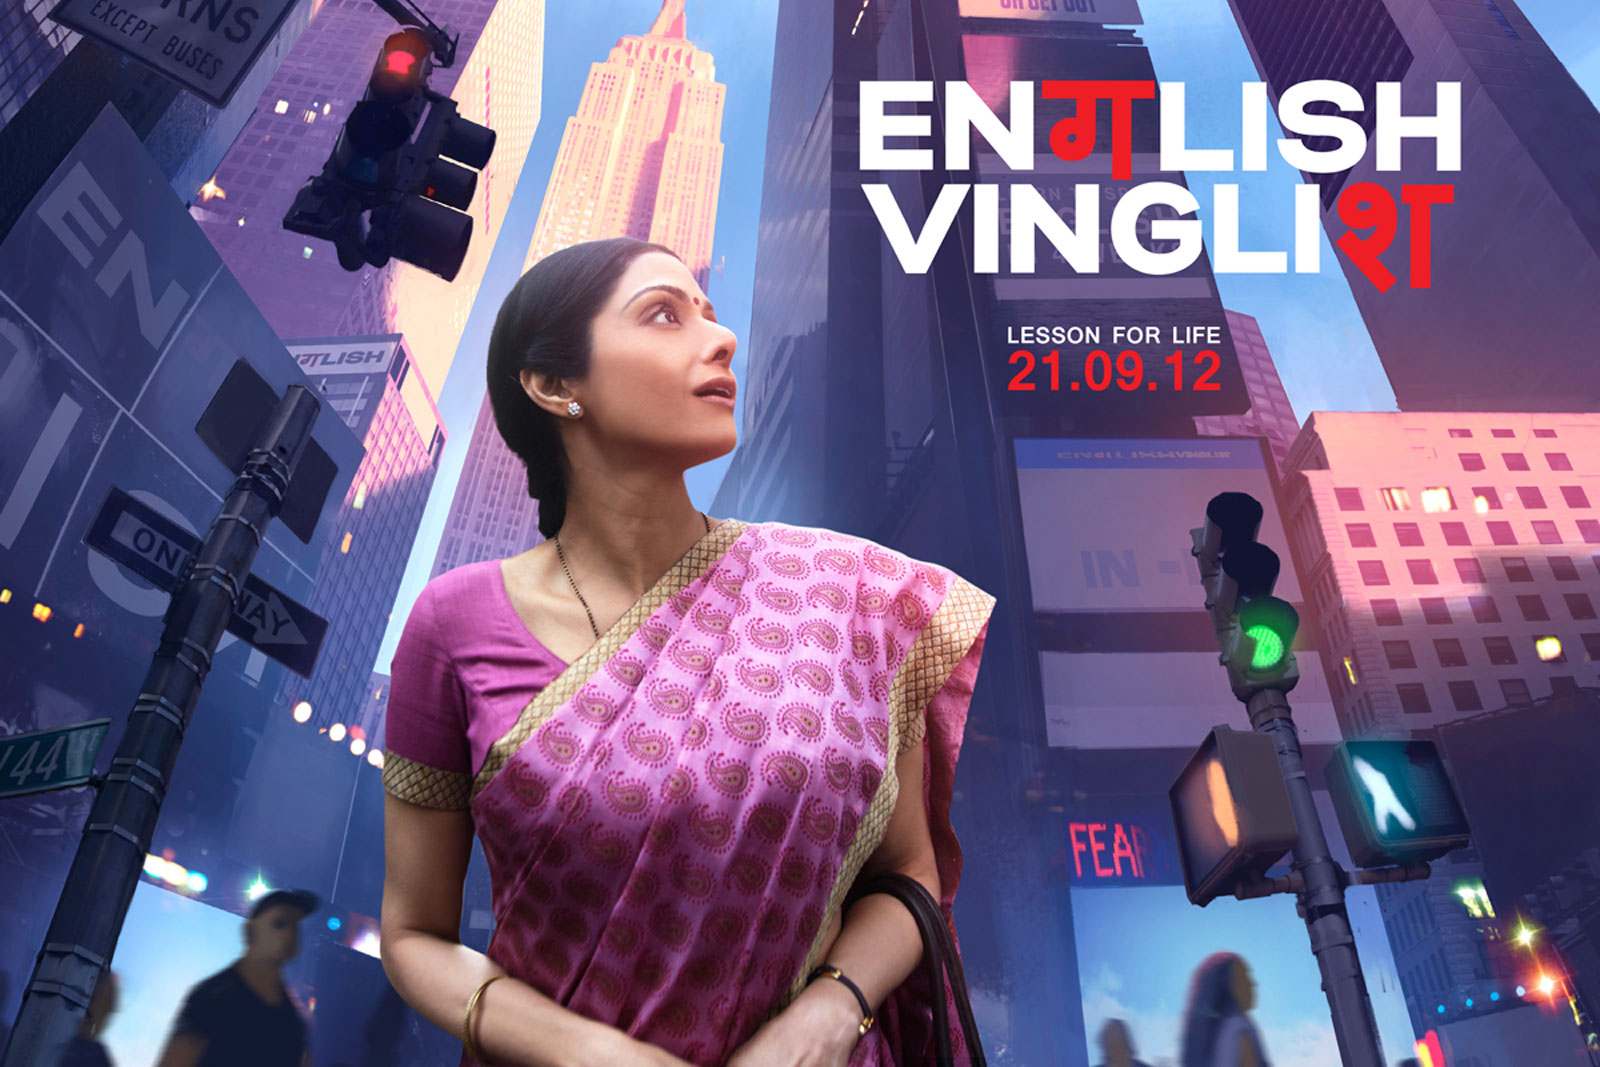 http://4.bp.blogspot.com/-pkoIR7eNV70/UDJwl76CQ6I/AAAAAAAAoNg/mSM8I_8B2uY/s1600/English+Vinglish+Wallpapers+HD+(1).jpg